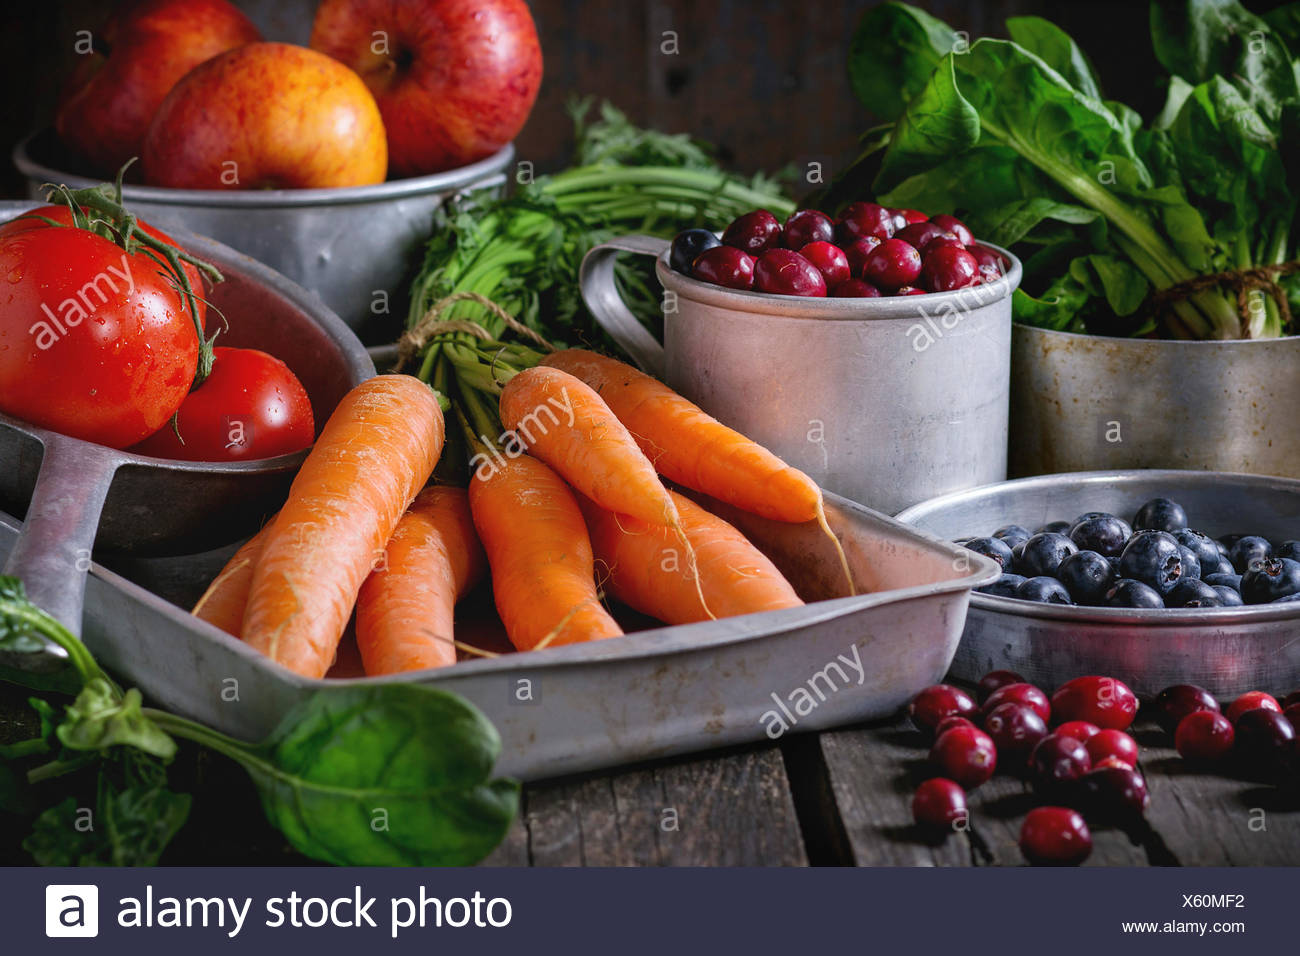 Assortment of fresh fruits, vegetables and berries. Bunch of carrots, spinach, tomatoes and red apples, blueberries and cranberr Stock Photo